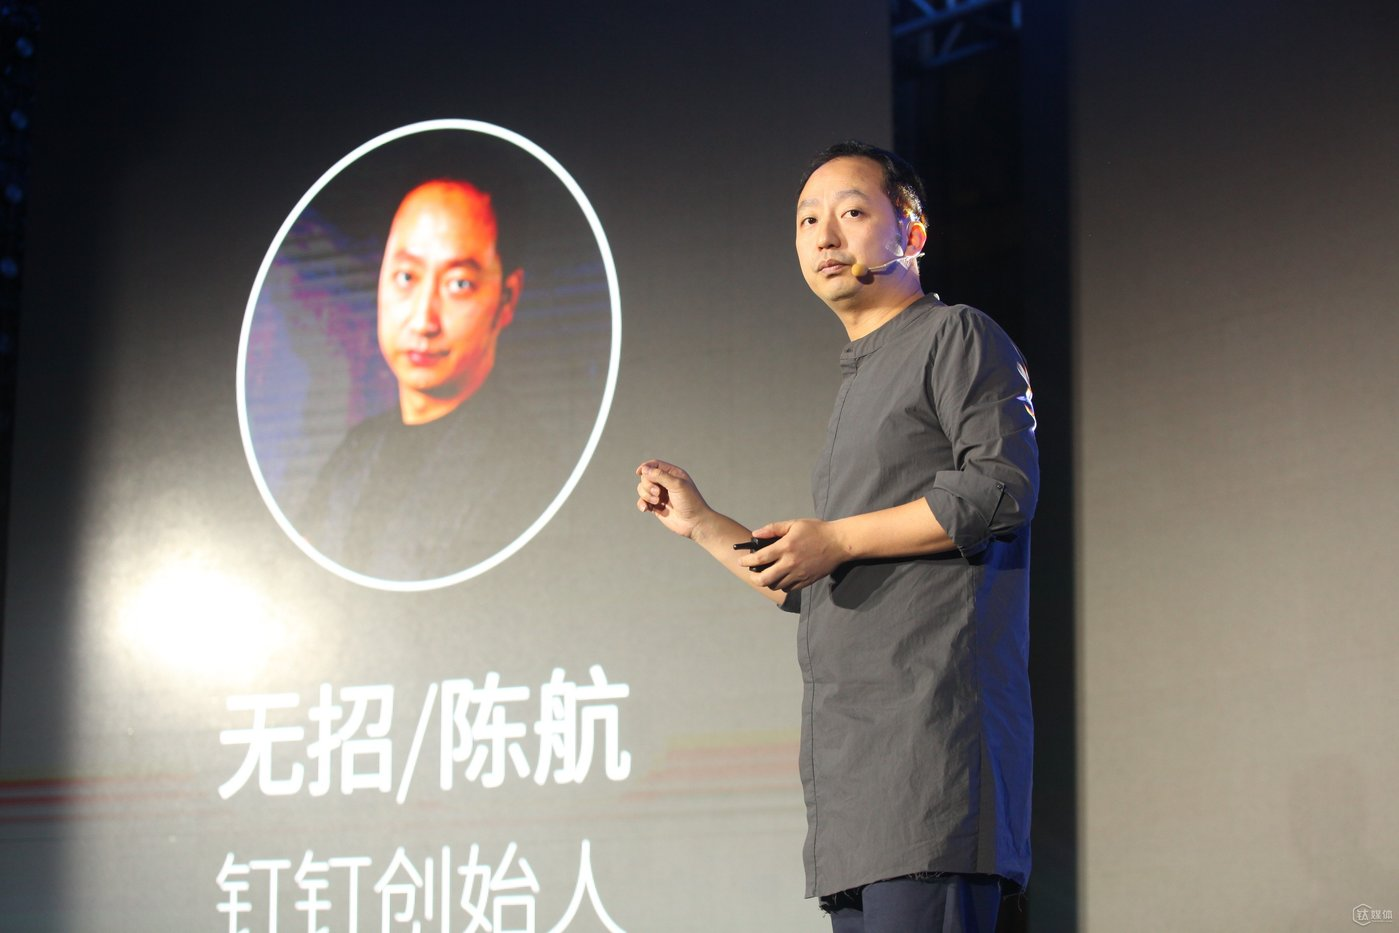 Chen Hang, the founder of DingTalk